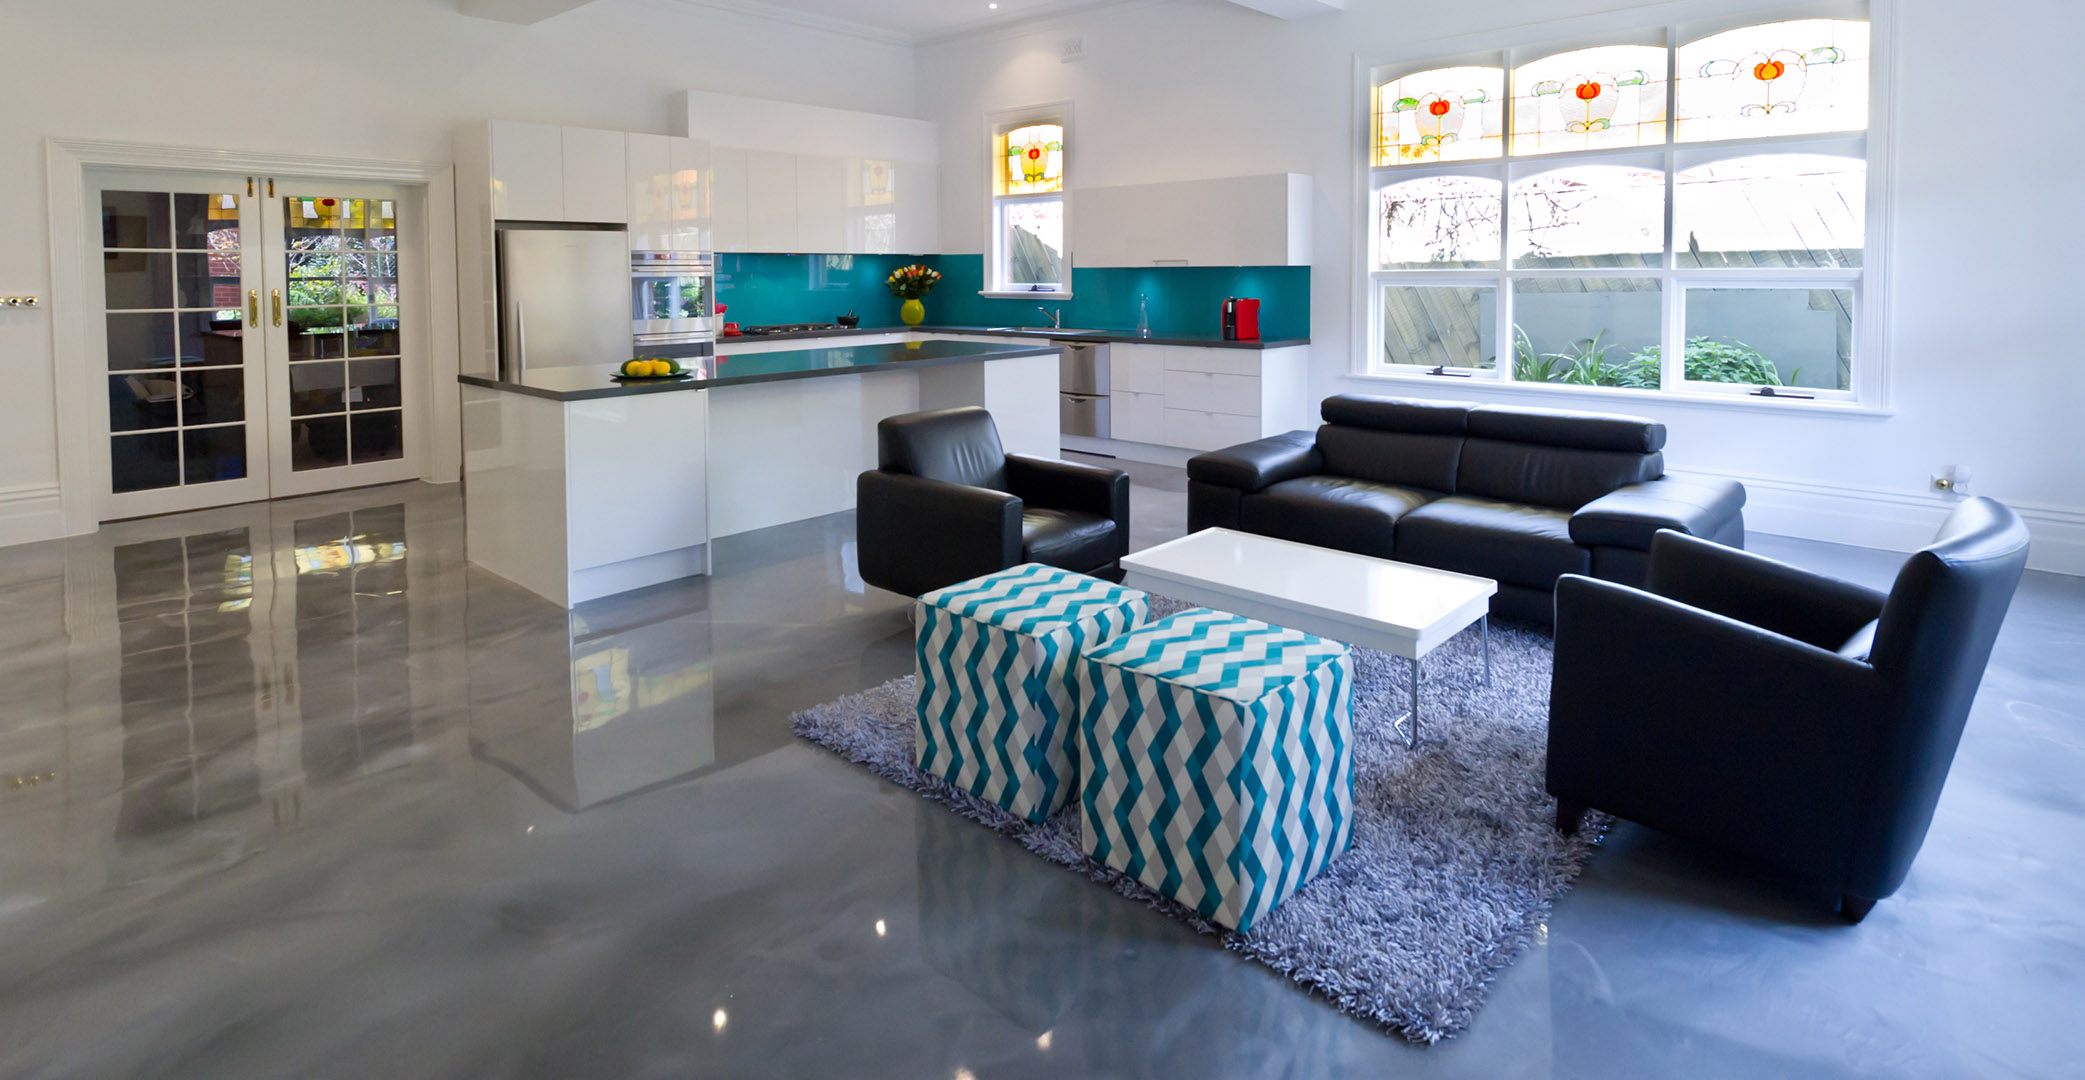 Epoxy Floor Coating: Make the Look of the House More Attractive